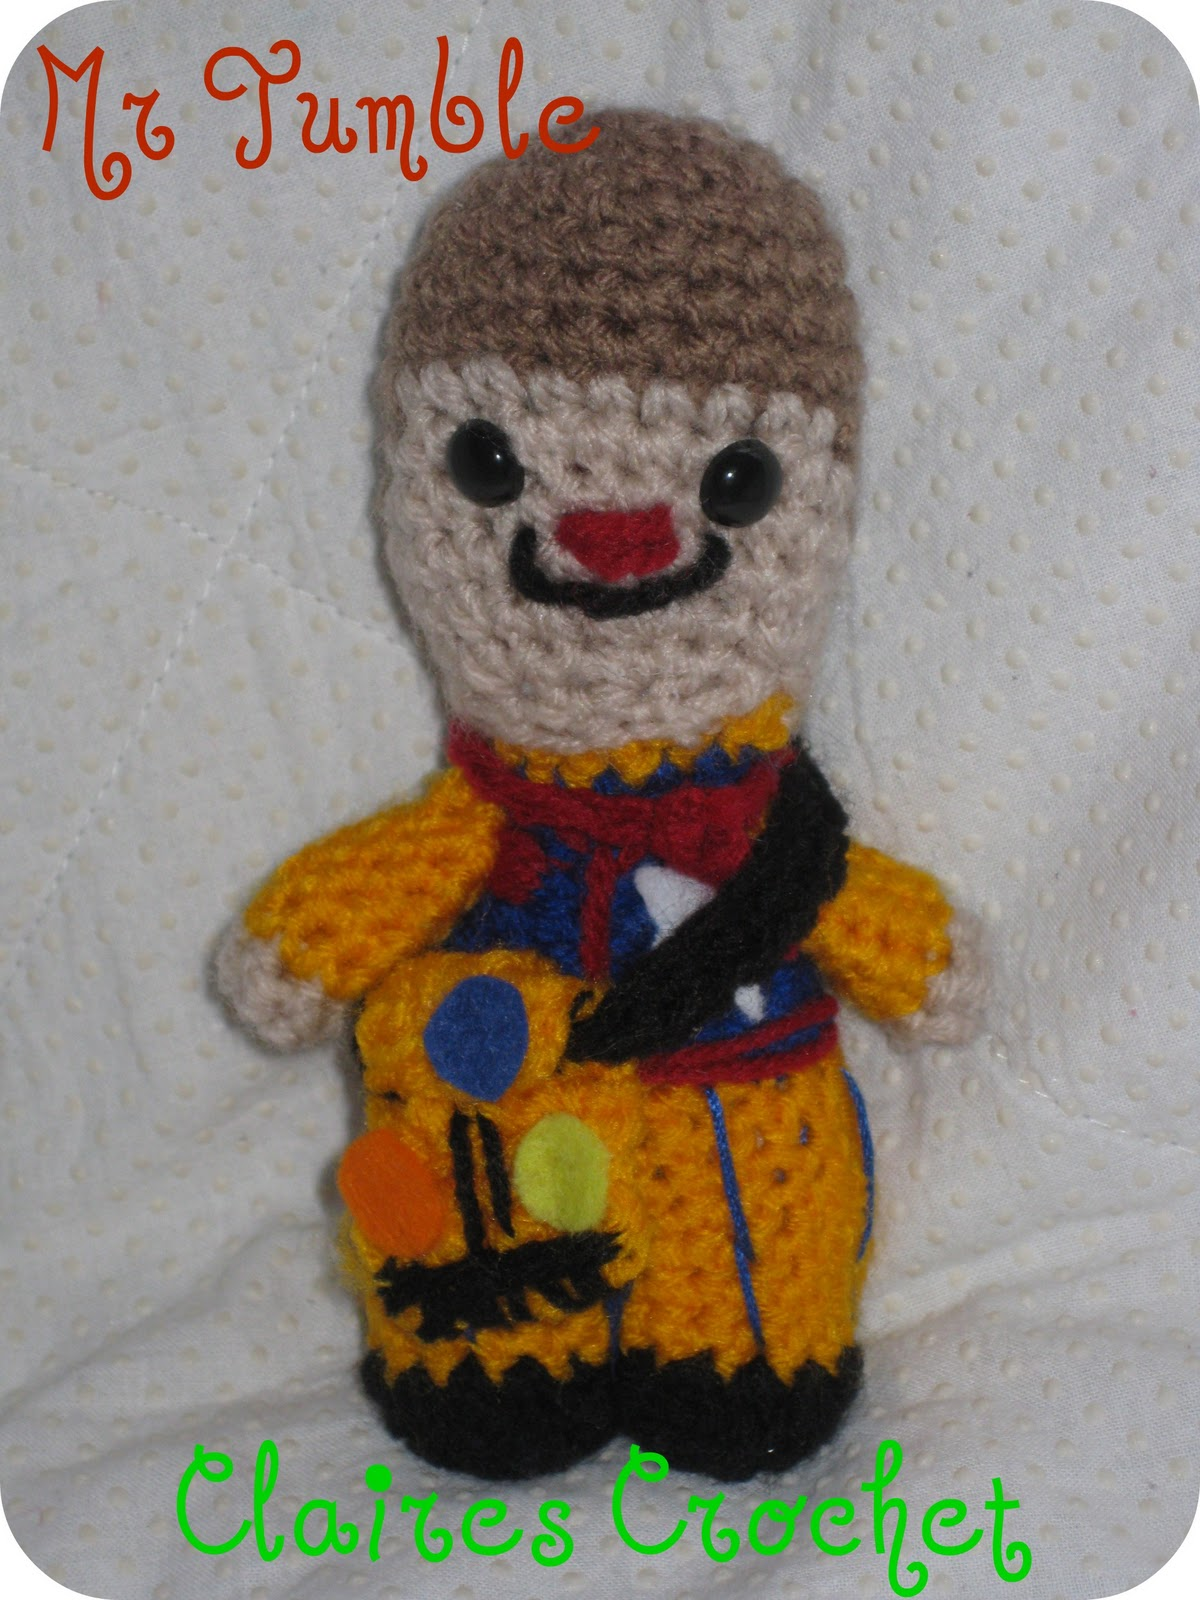 Claires Crochet: Mr Tumble!!